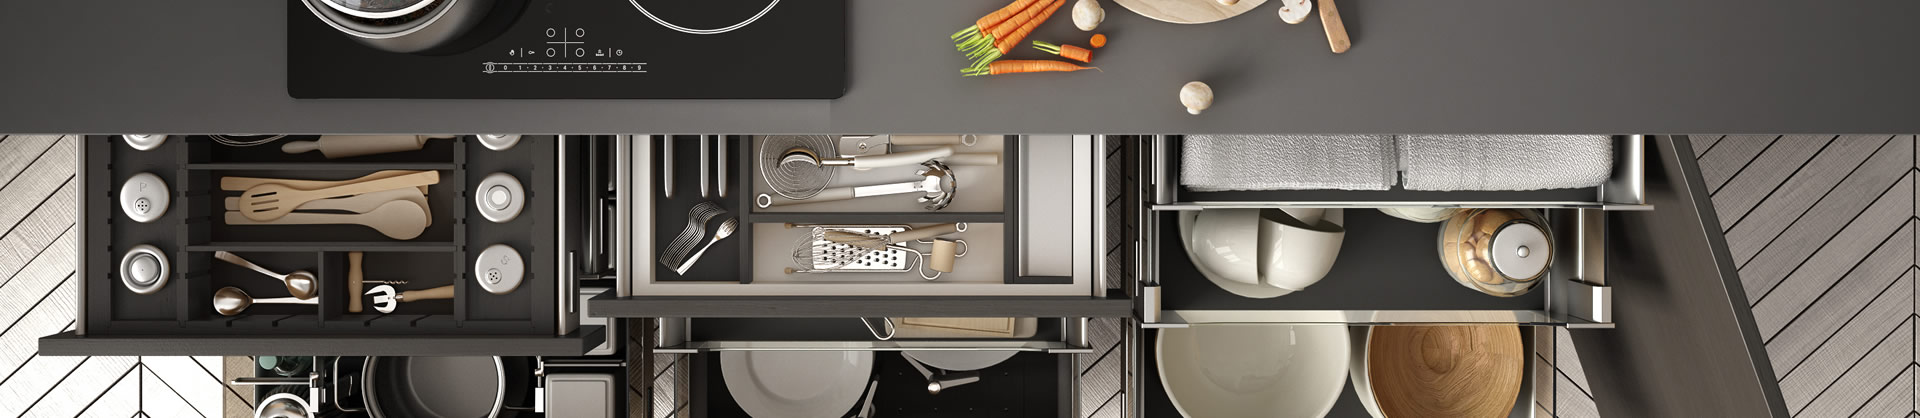 Kitchen Organization - Declutter your Home!